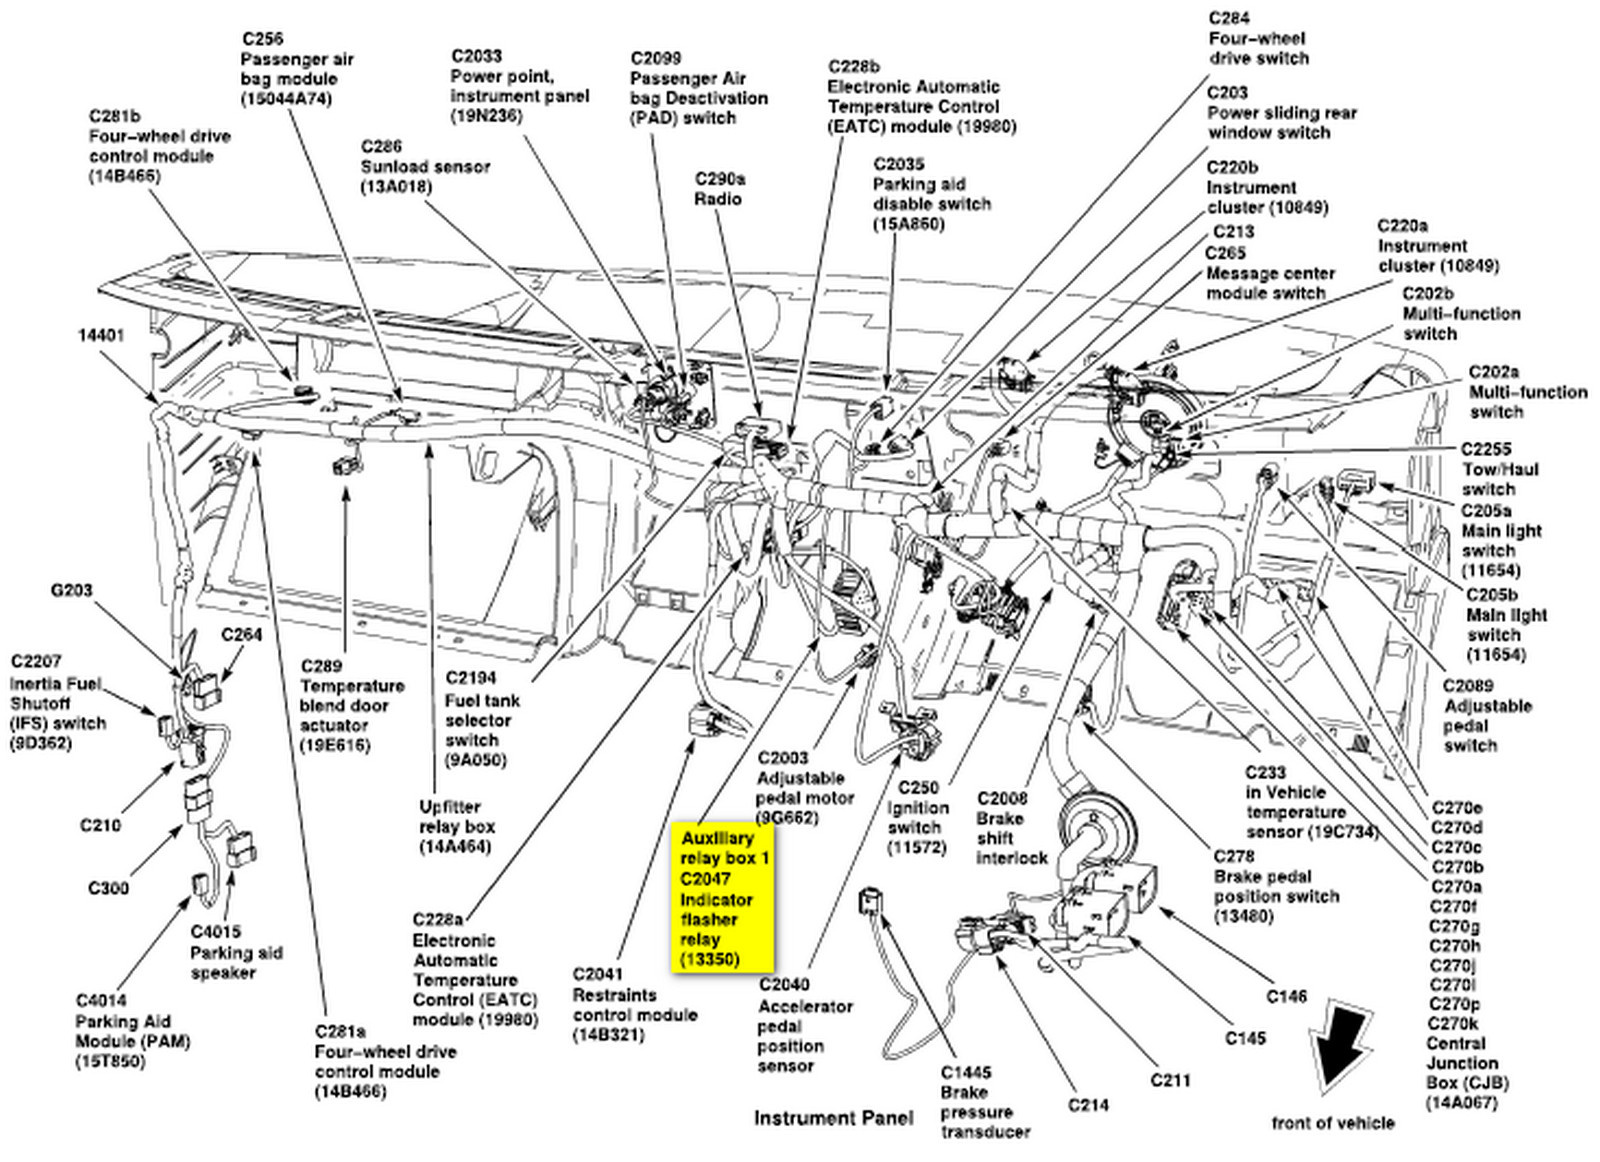 2000 Chevy Truck 2500 Wiring Diagram 2000 Discover Your Wiring further 1979 Chevy Truck Turn Signal Wiring Diagram Brake Light Switch further 1968 Mustang Wiring Diagram Vacuum Schematics further Discussion T60374 ds560387 likewise Schematics h. on chevy truck tail light wiring diagram